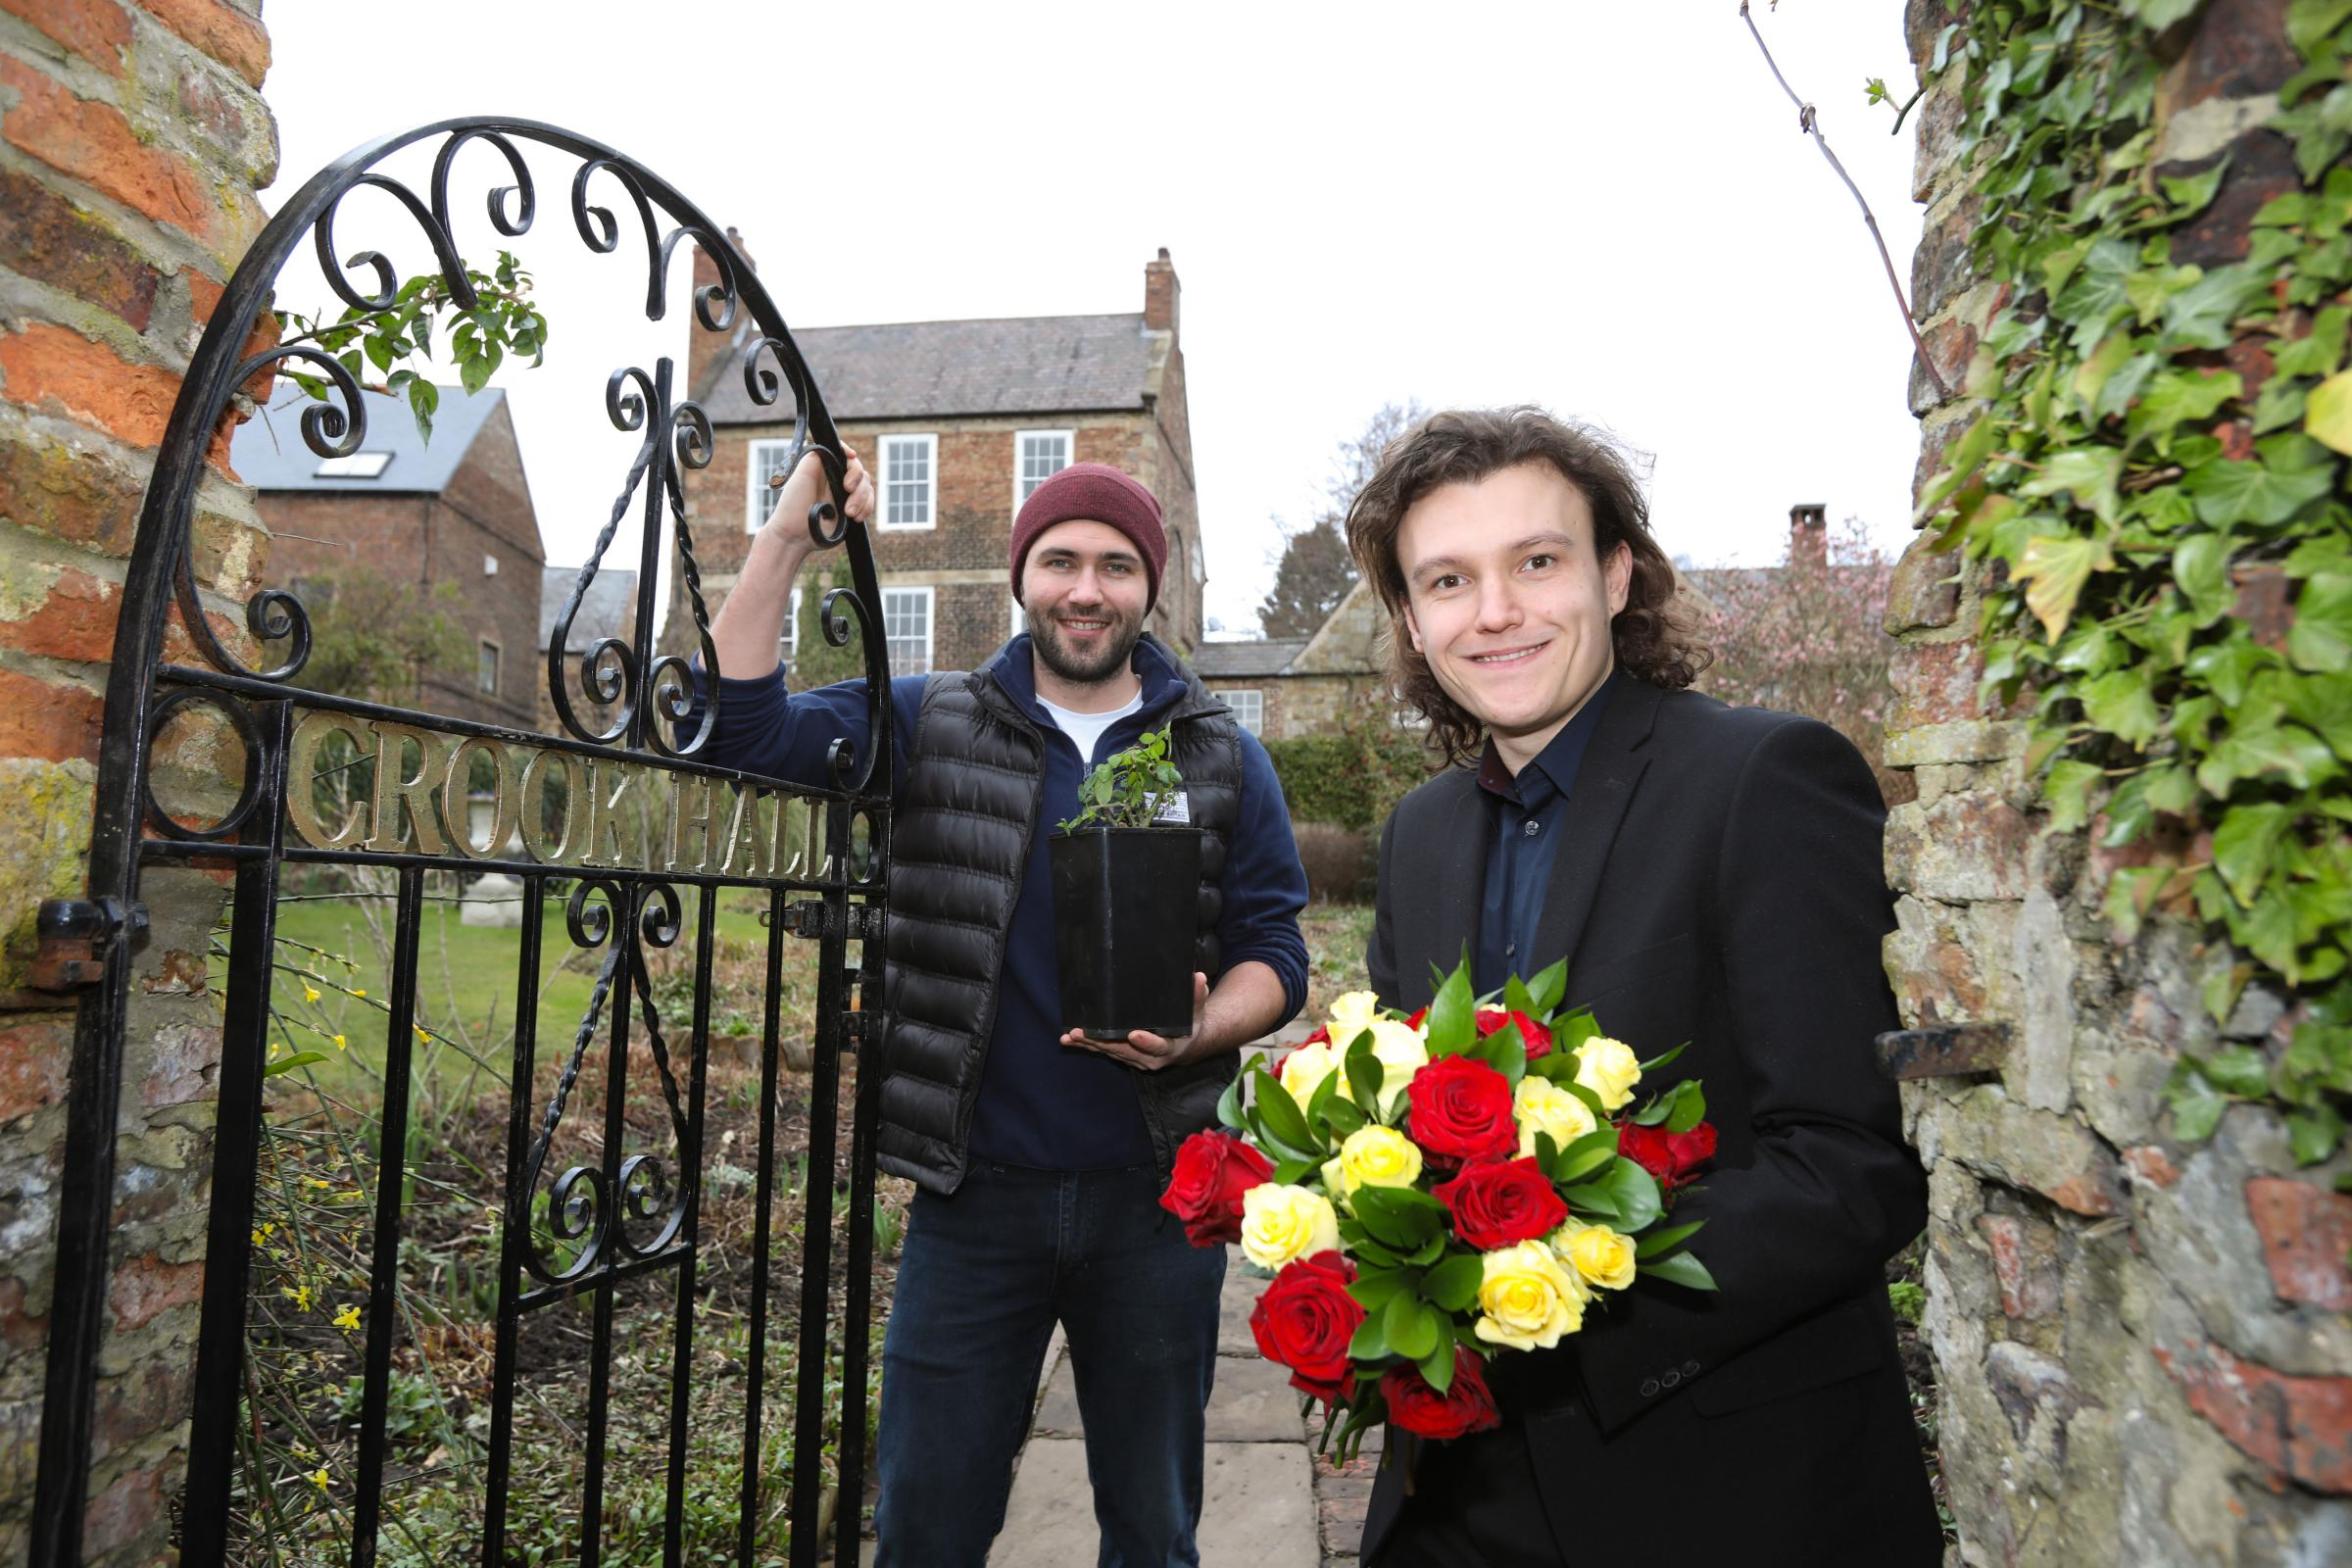 Ethopian Airlines marks first anniversary with gift of roses to Durham's Crook Hall and Gardens